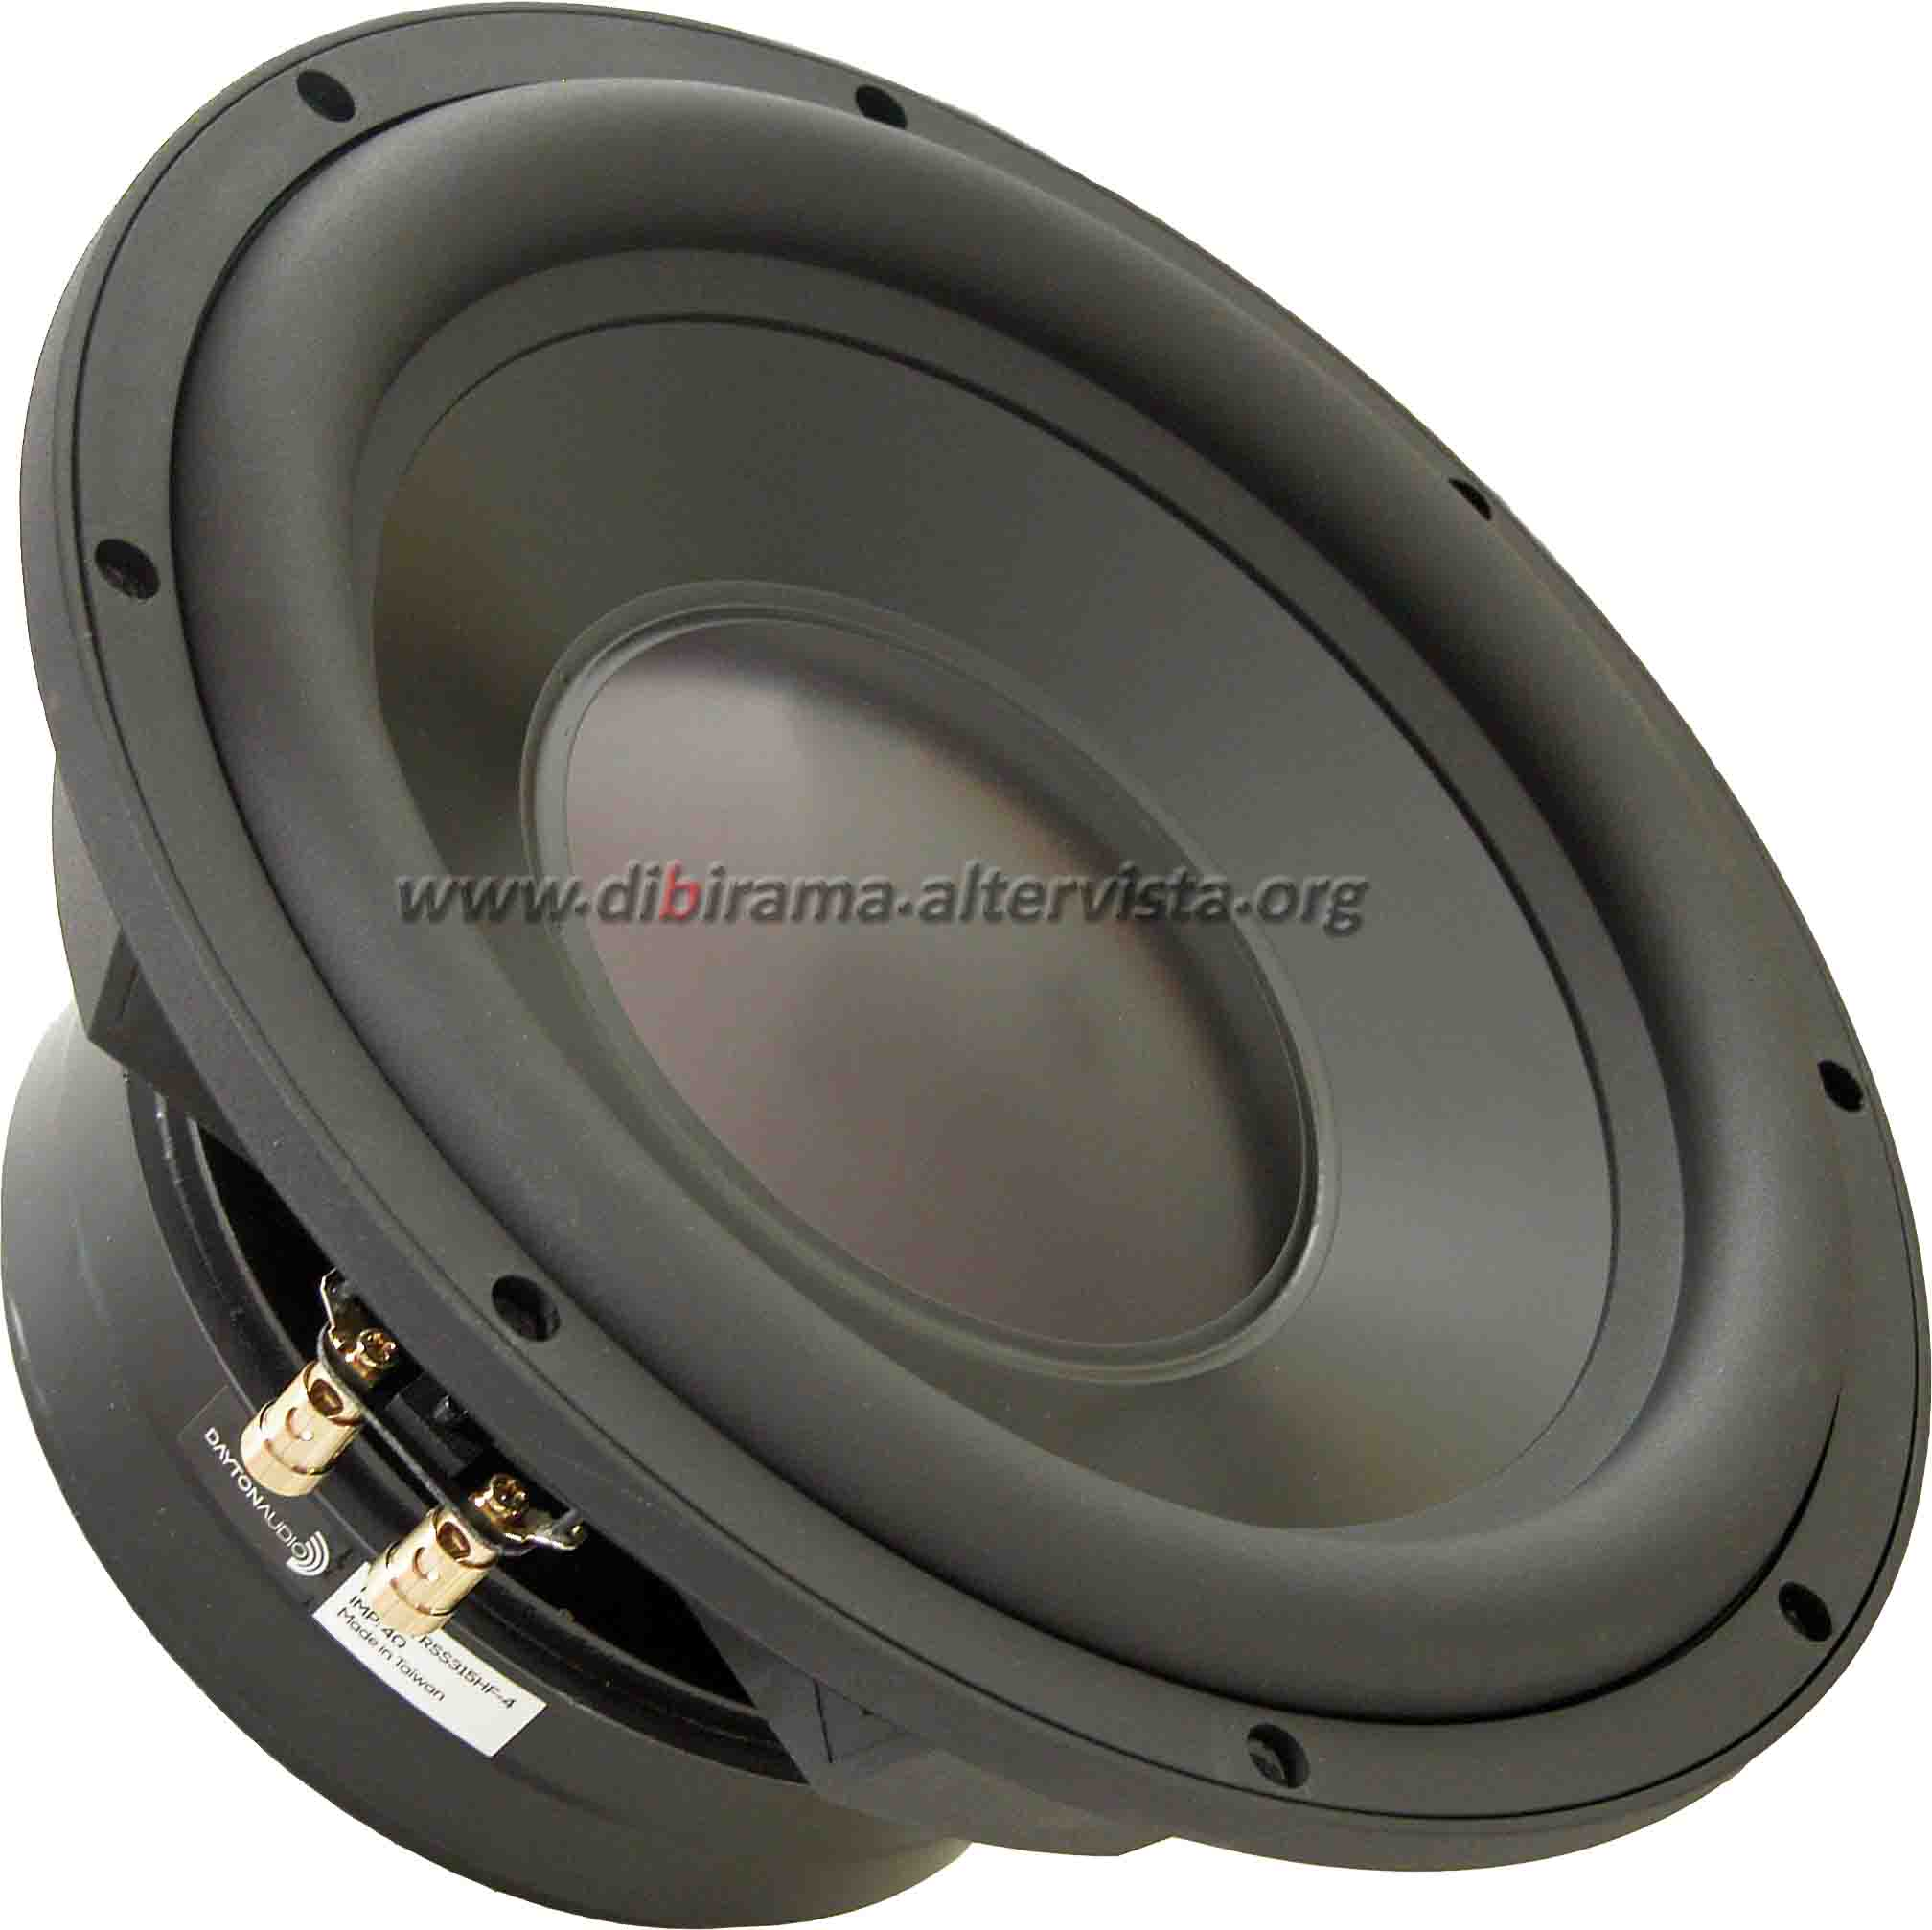 dayton-audio-rss315hf-4-sub-woofer-12-4-ohm-800-wmax